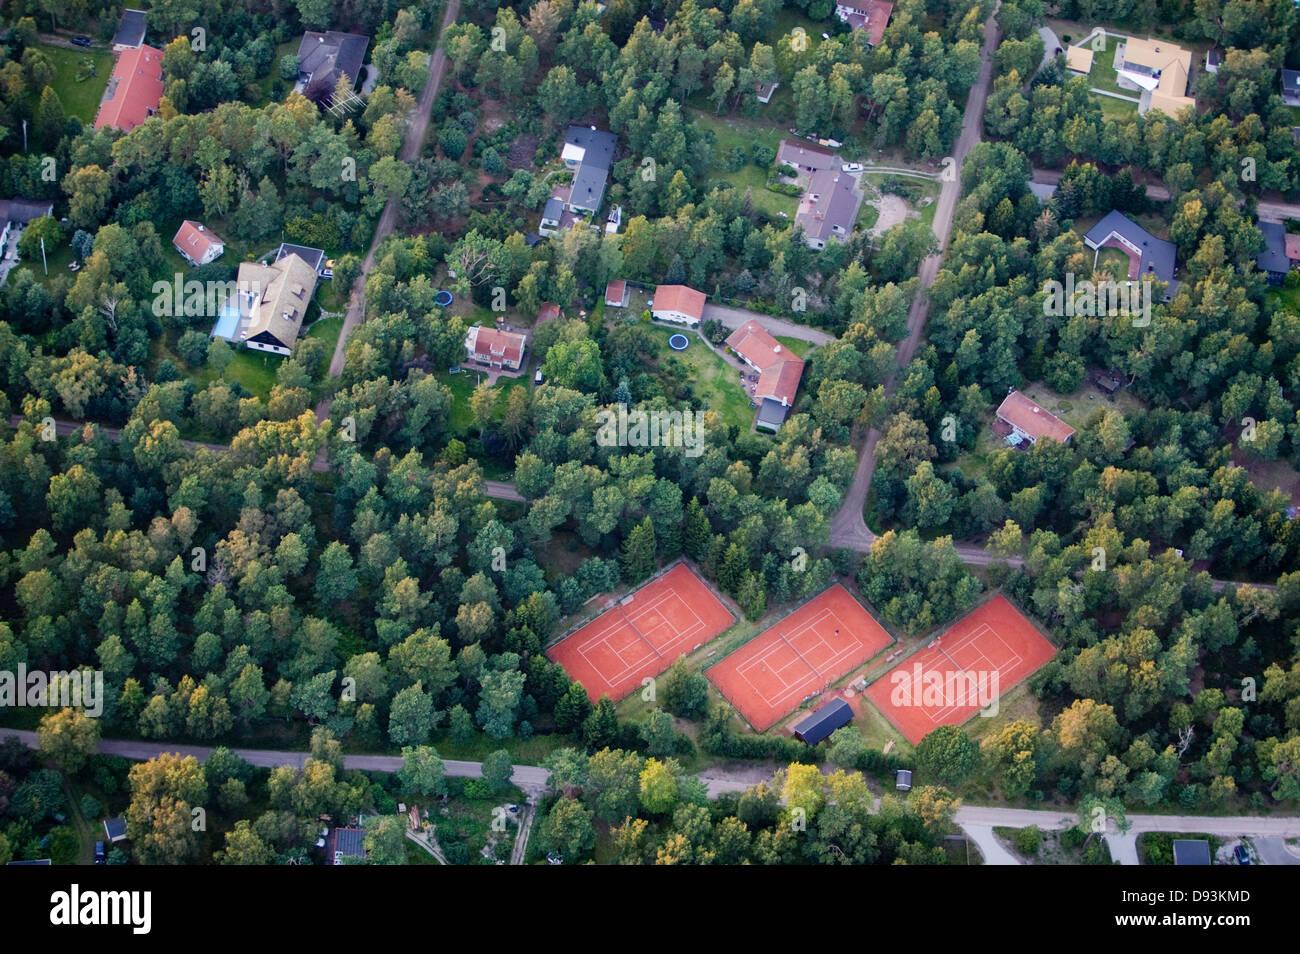 Residential district with tennis court Stock Photo